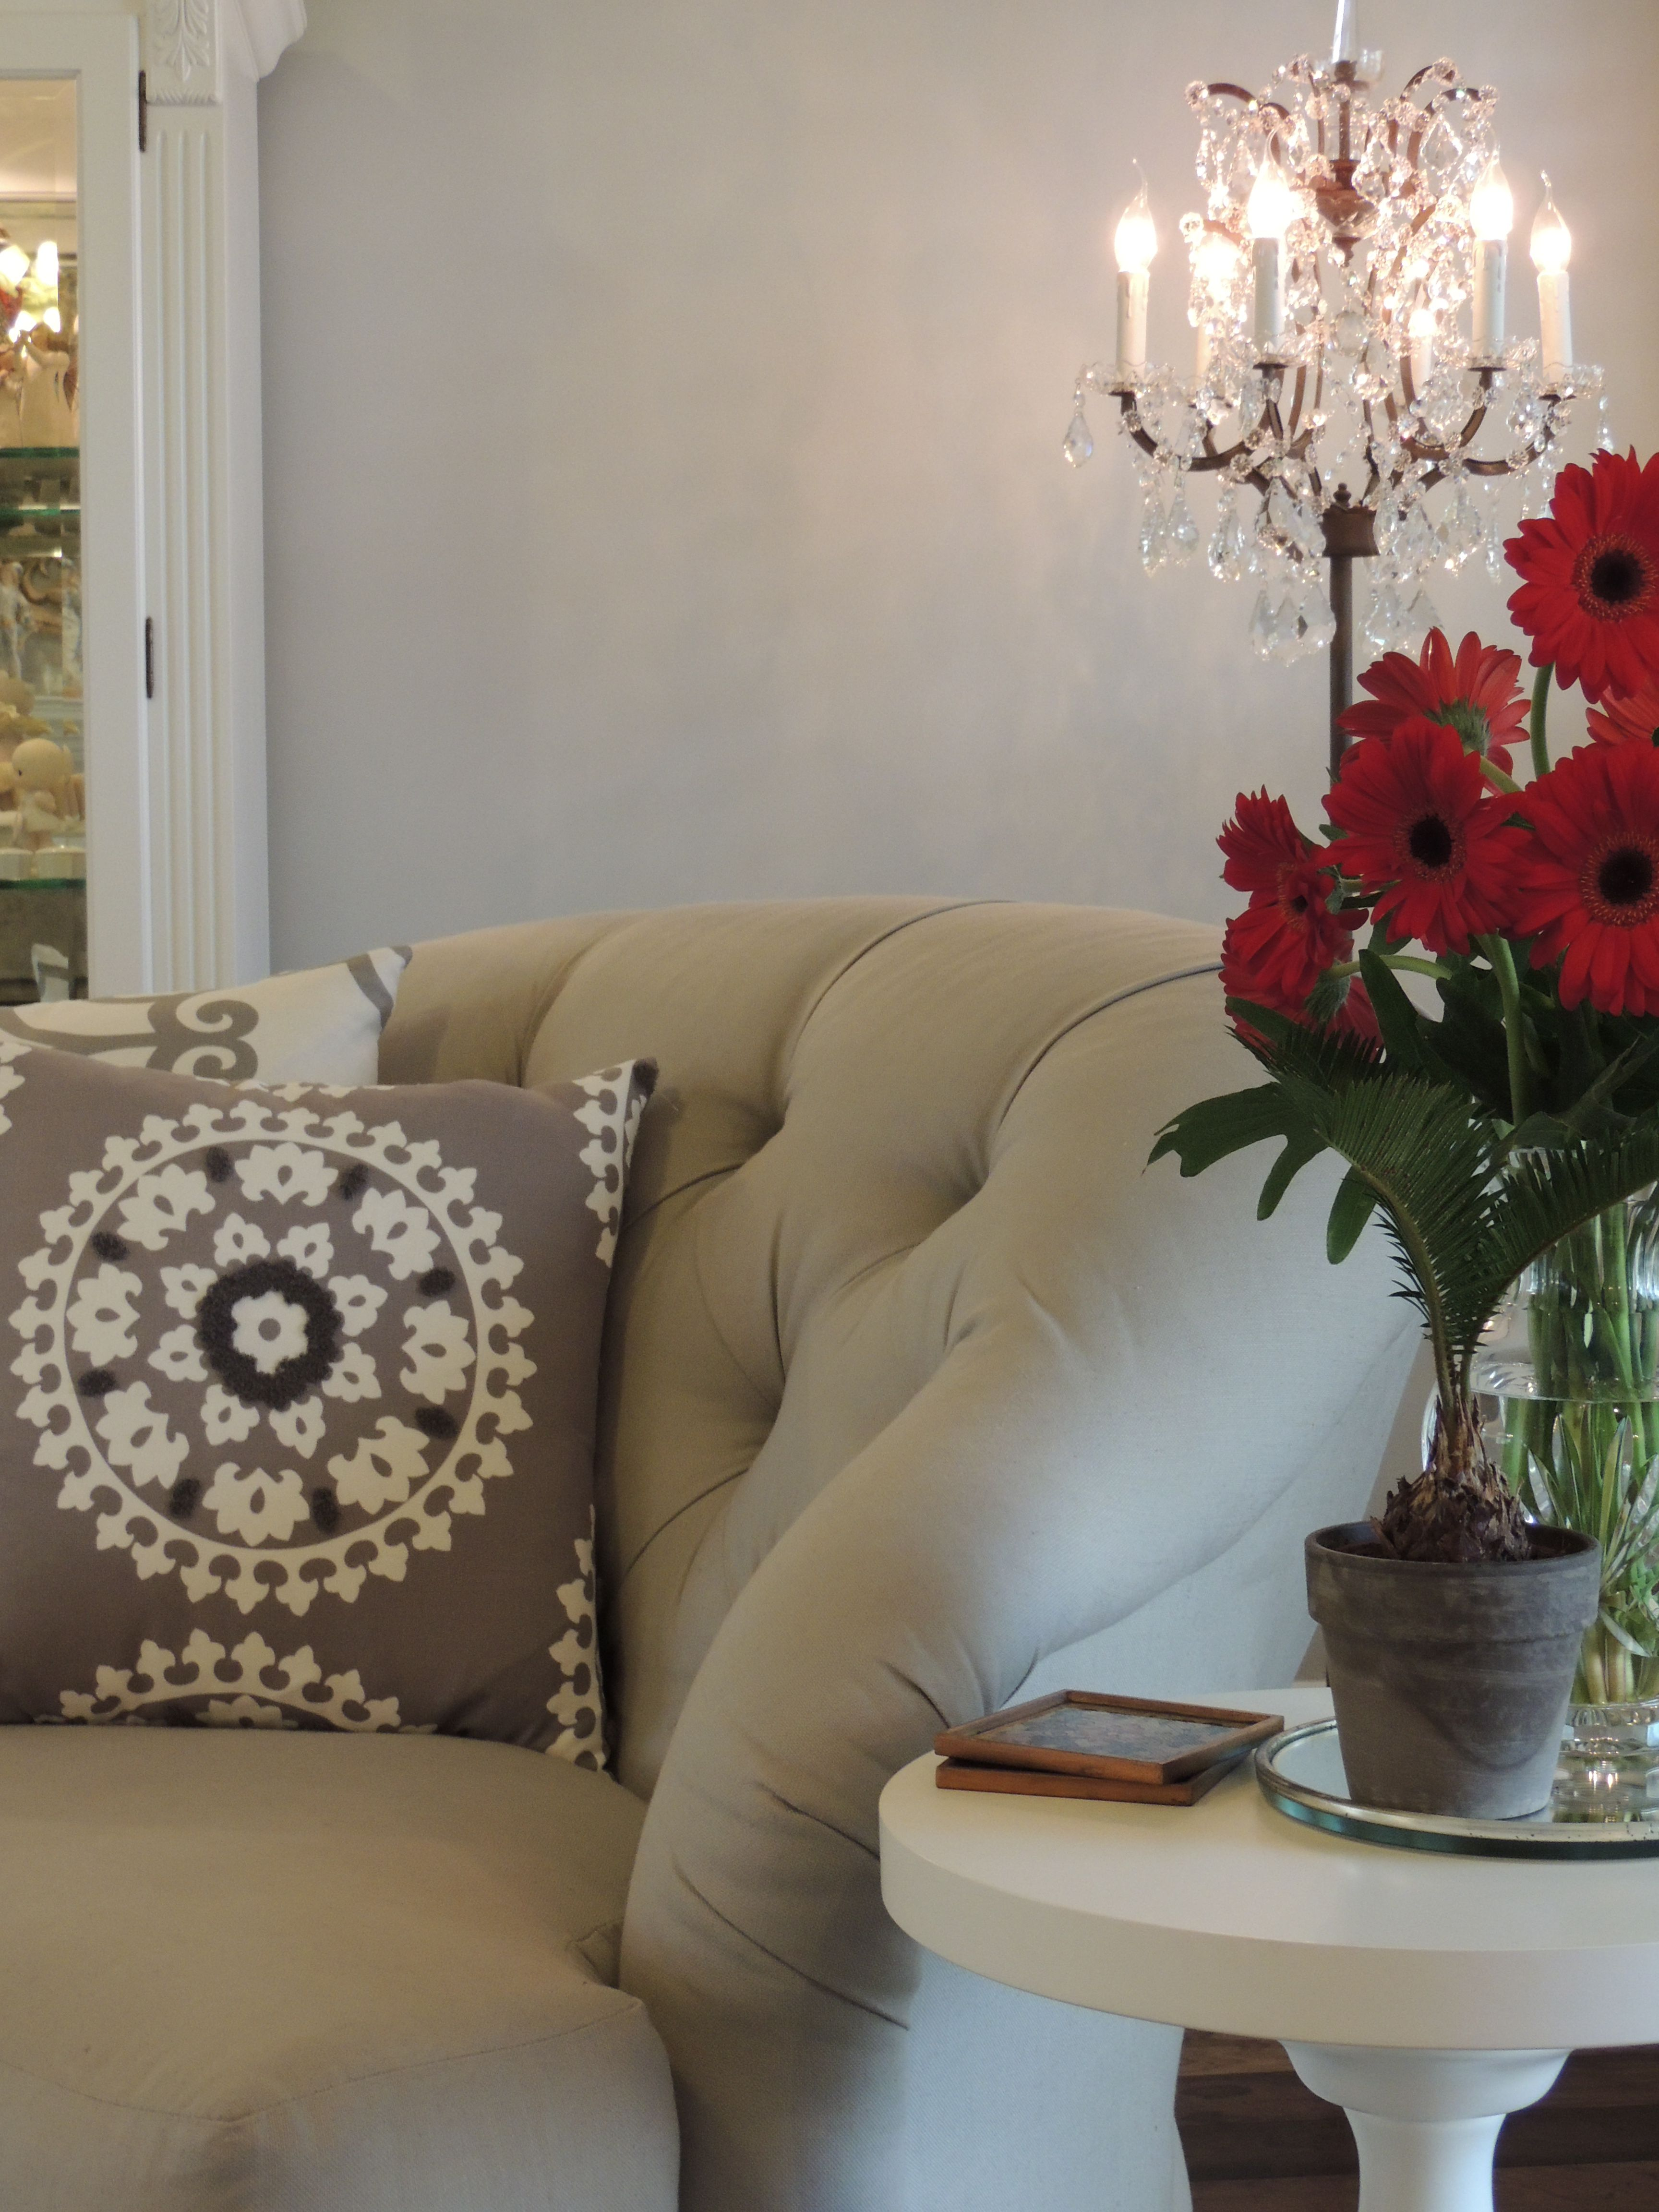 Kravet and schumacher fabrics on pillows reupholstered these cuddle